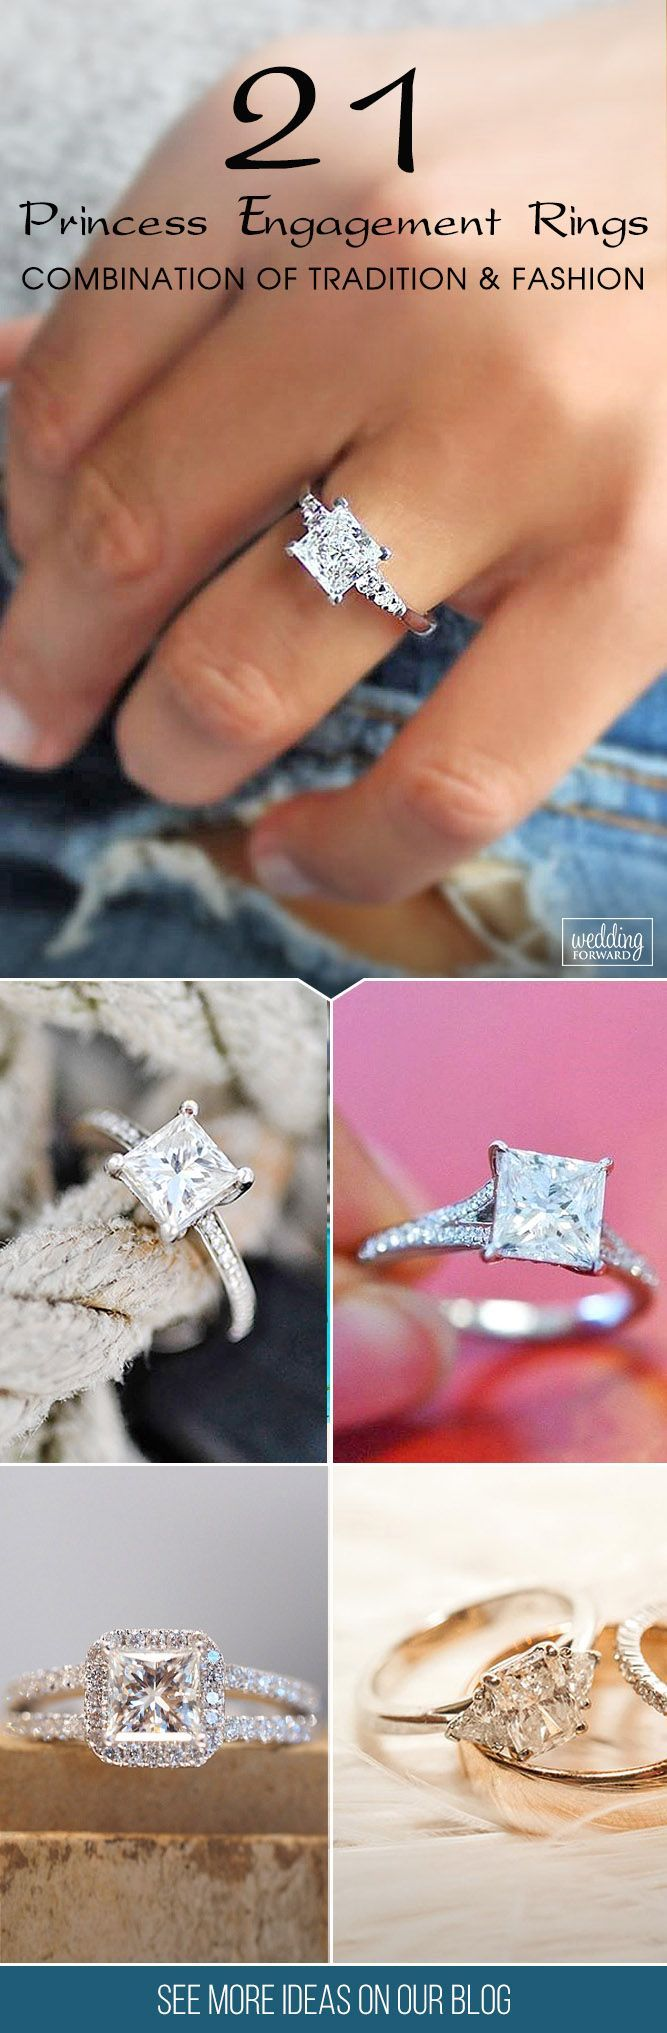 21 Breathtaking Princess Cut Engagement Rings ❤ Princess cut engagement rings are combination of tradition and fashion. Choose princess cut diamond rings you will get unique, modern shape and amazing sparkling appearance for lower price. See more: http://www.weddingforward.com/princess-cut-engagement-rings/ #wedding #engagement #rings #princess